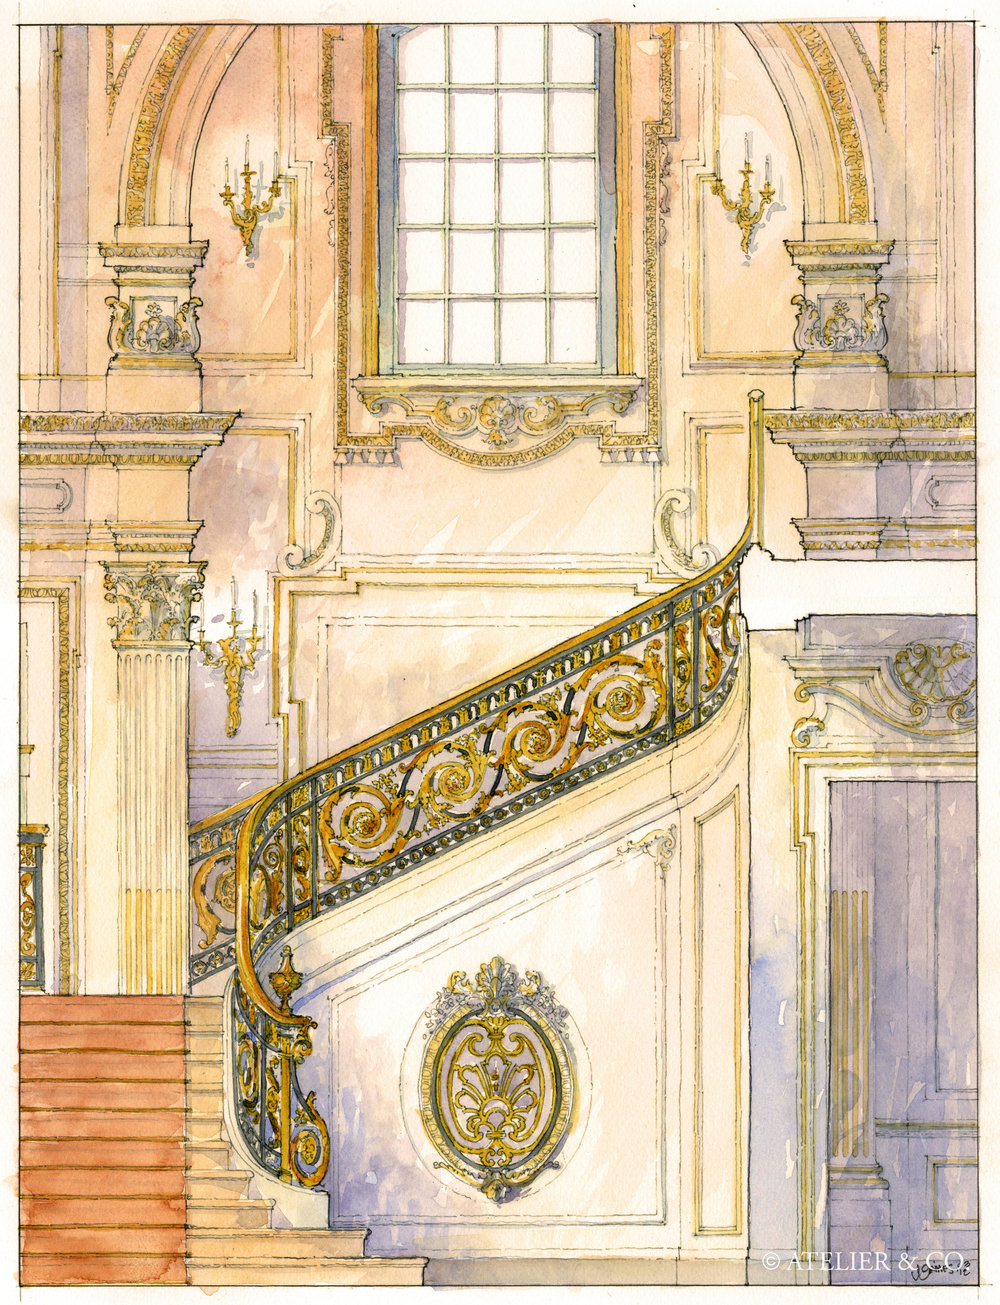 Stairhall2_Copyright.jpg